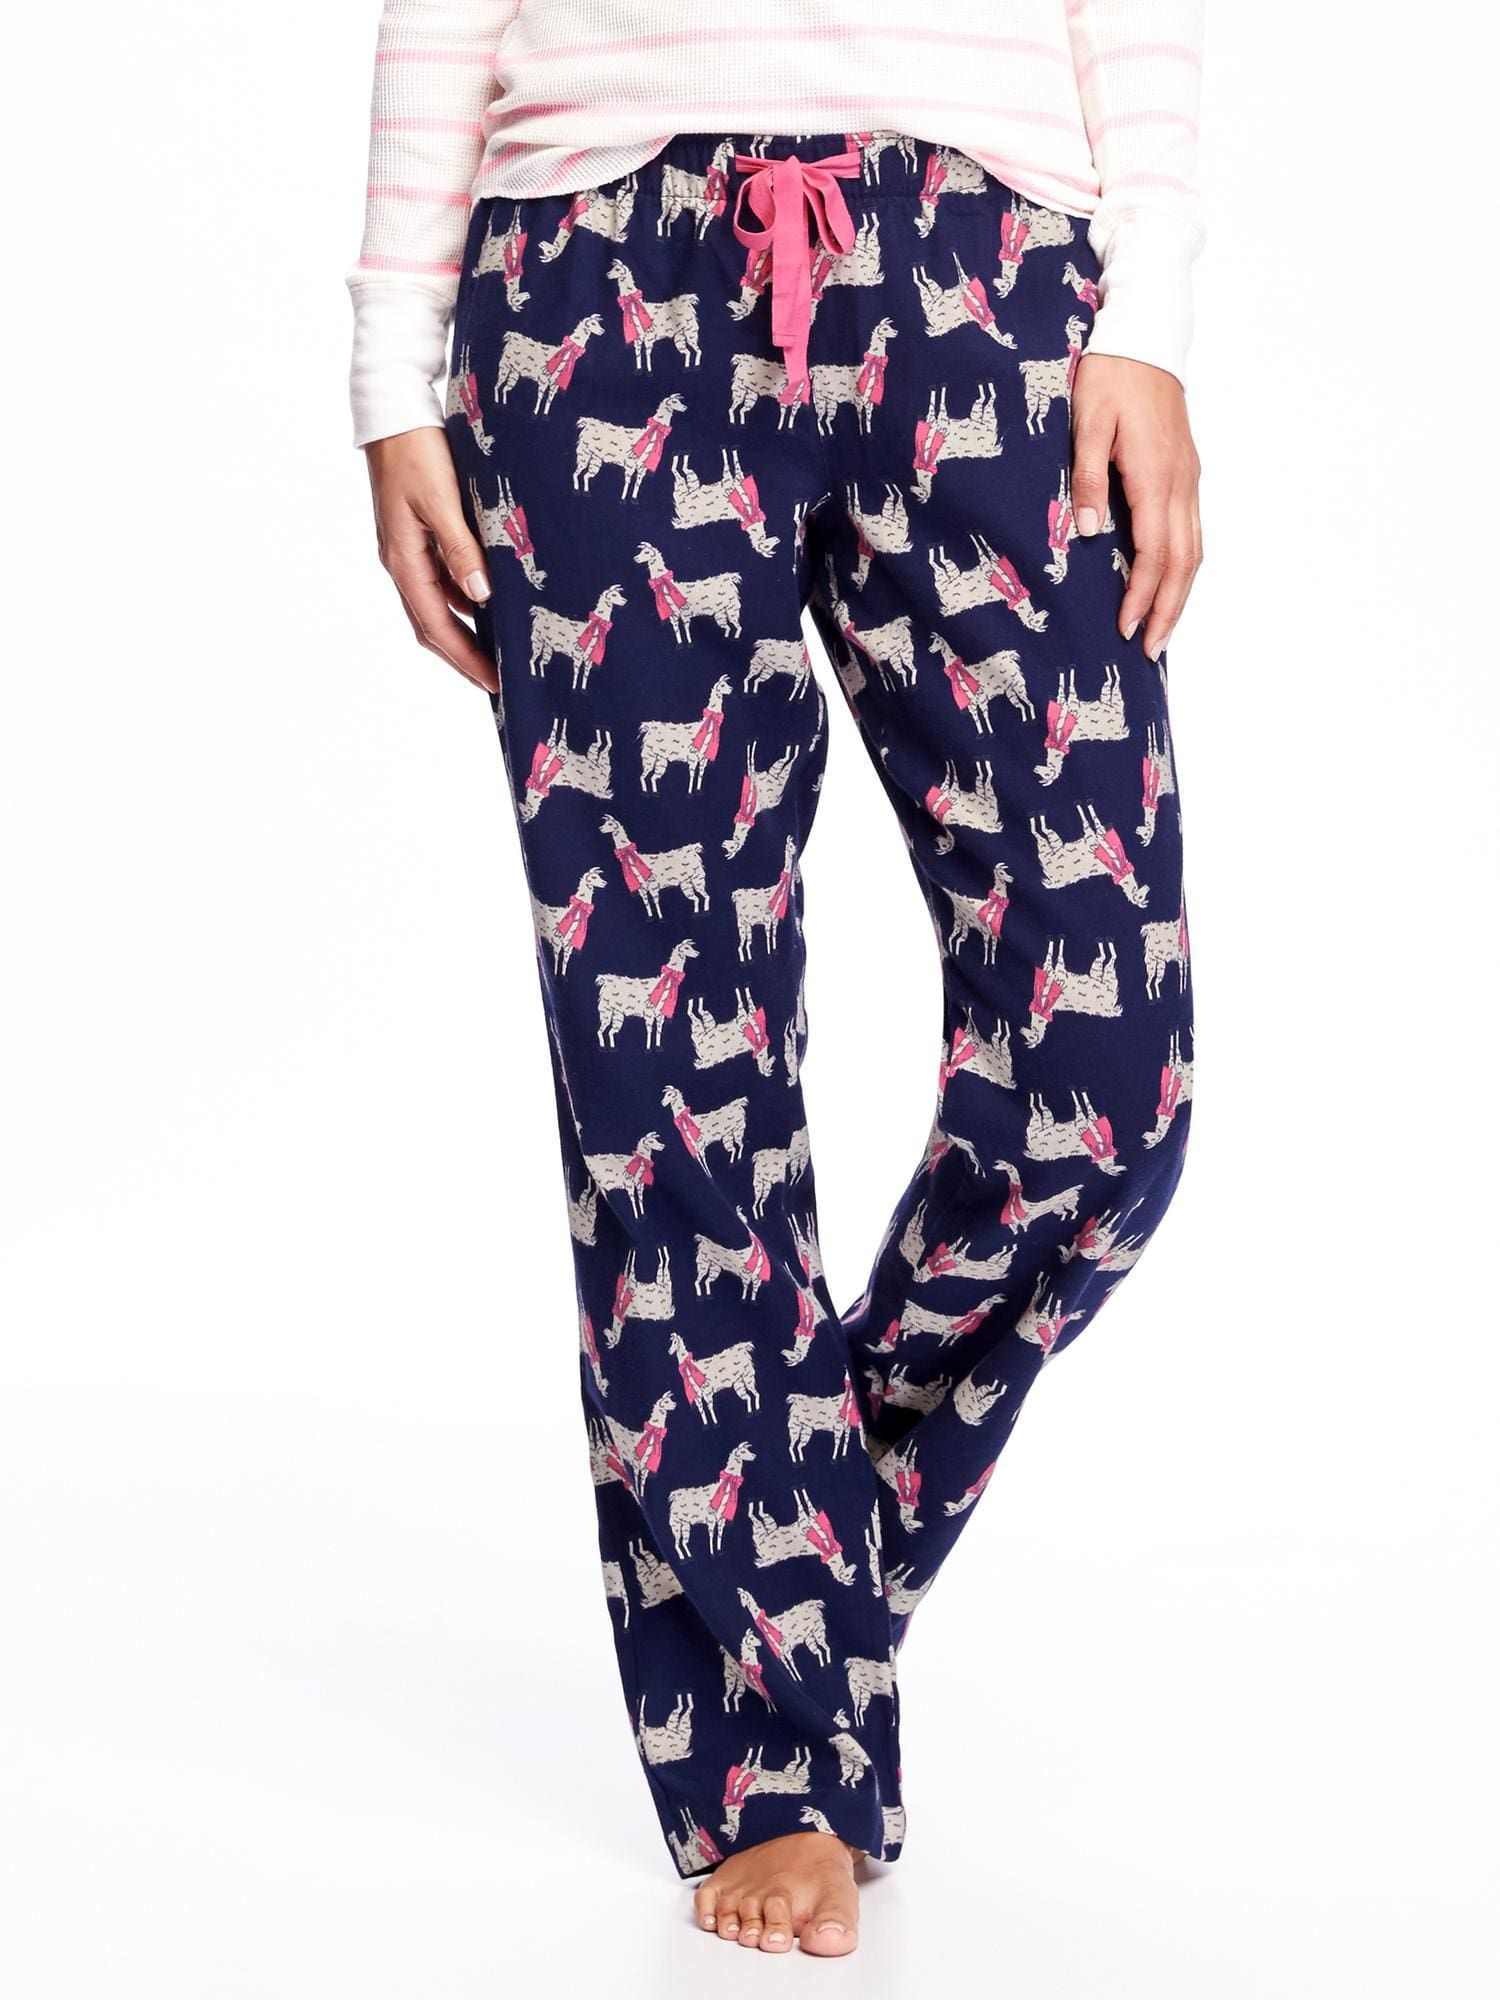 Pajama pants with llamas wearing scarves. Yes.  b20d5f991